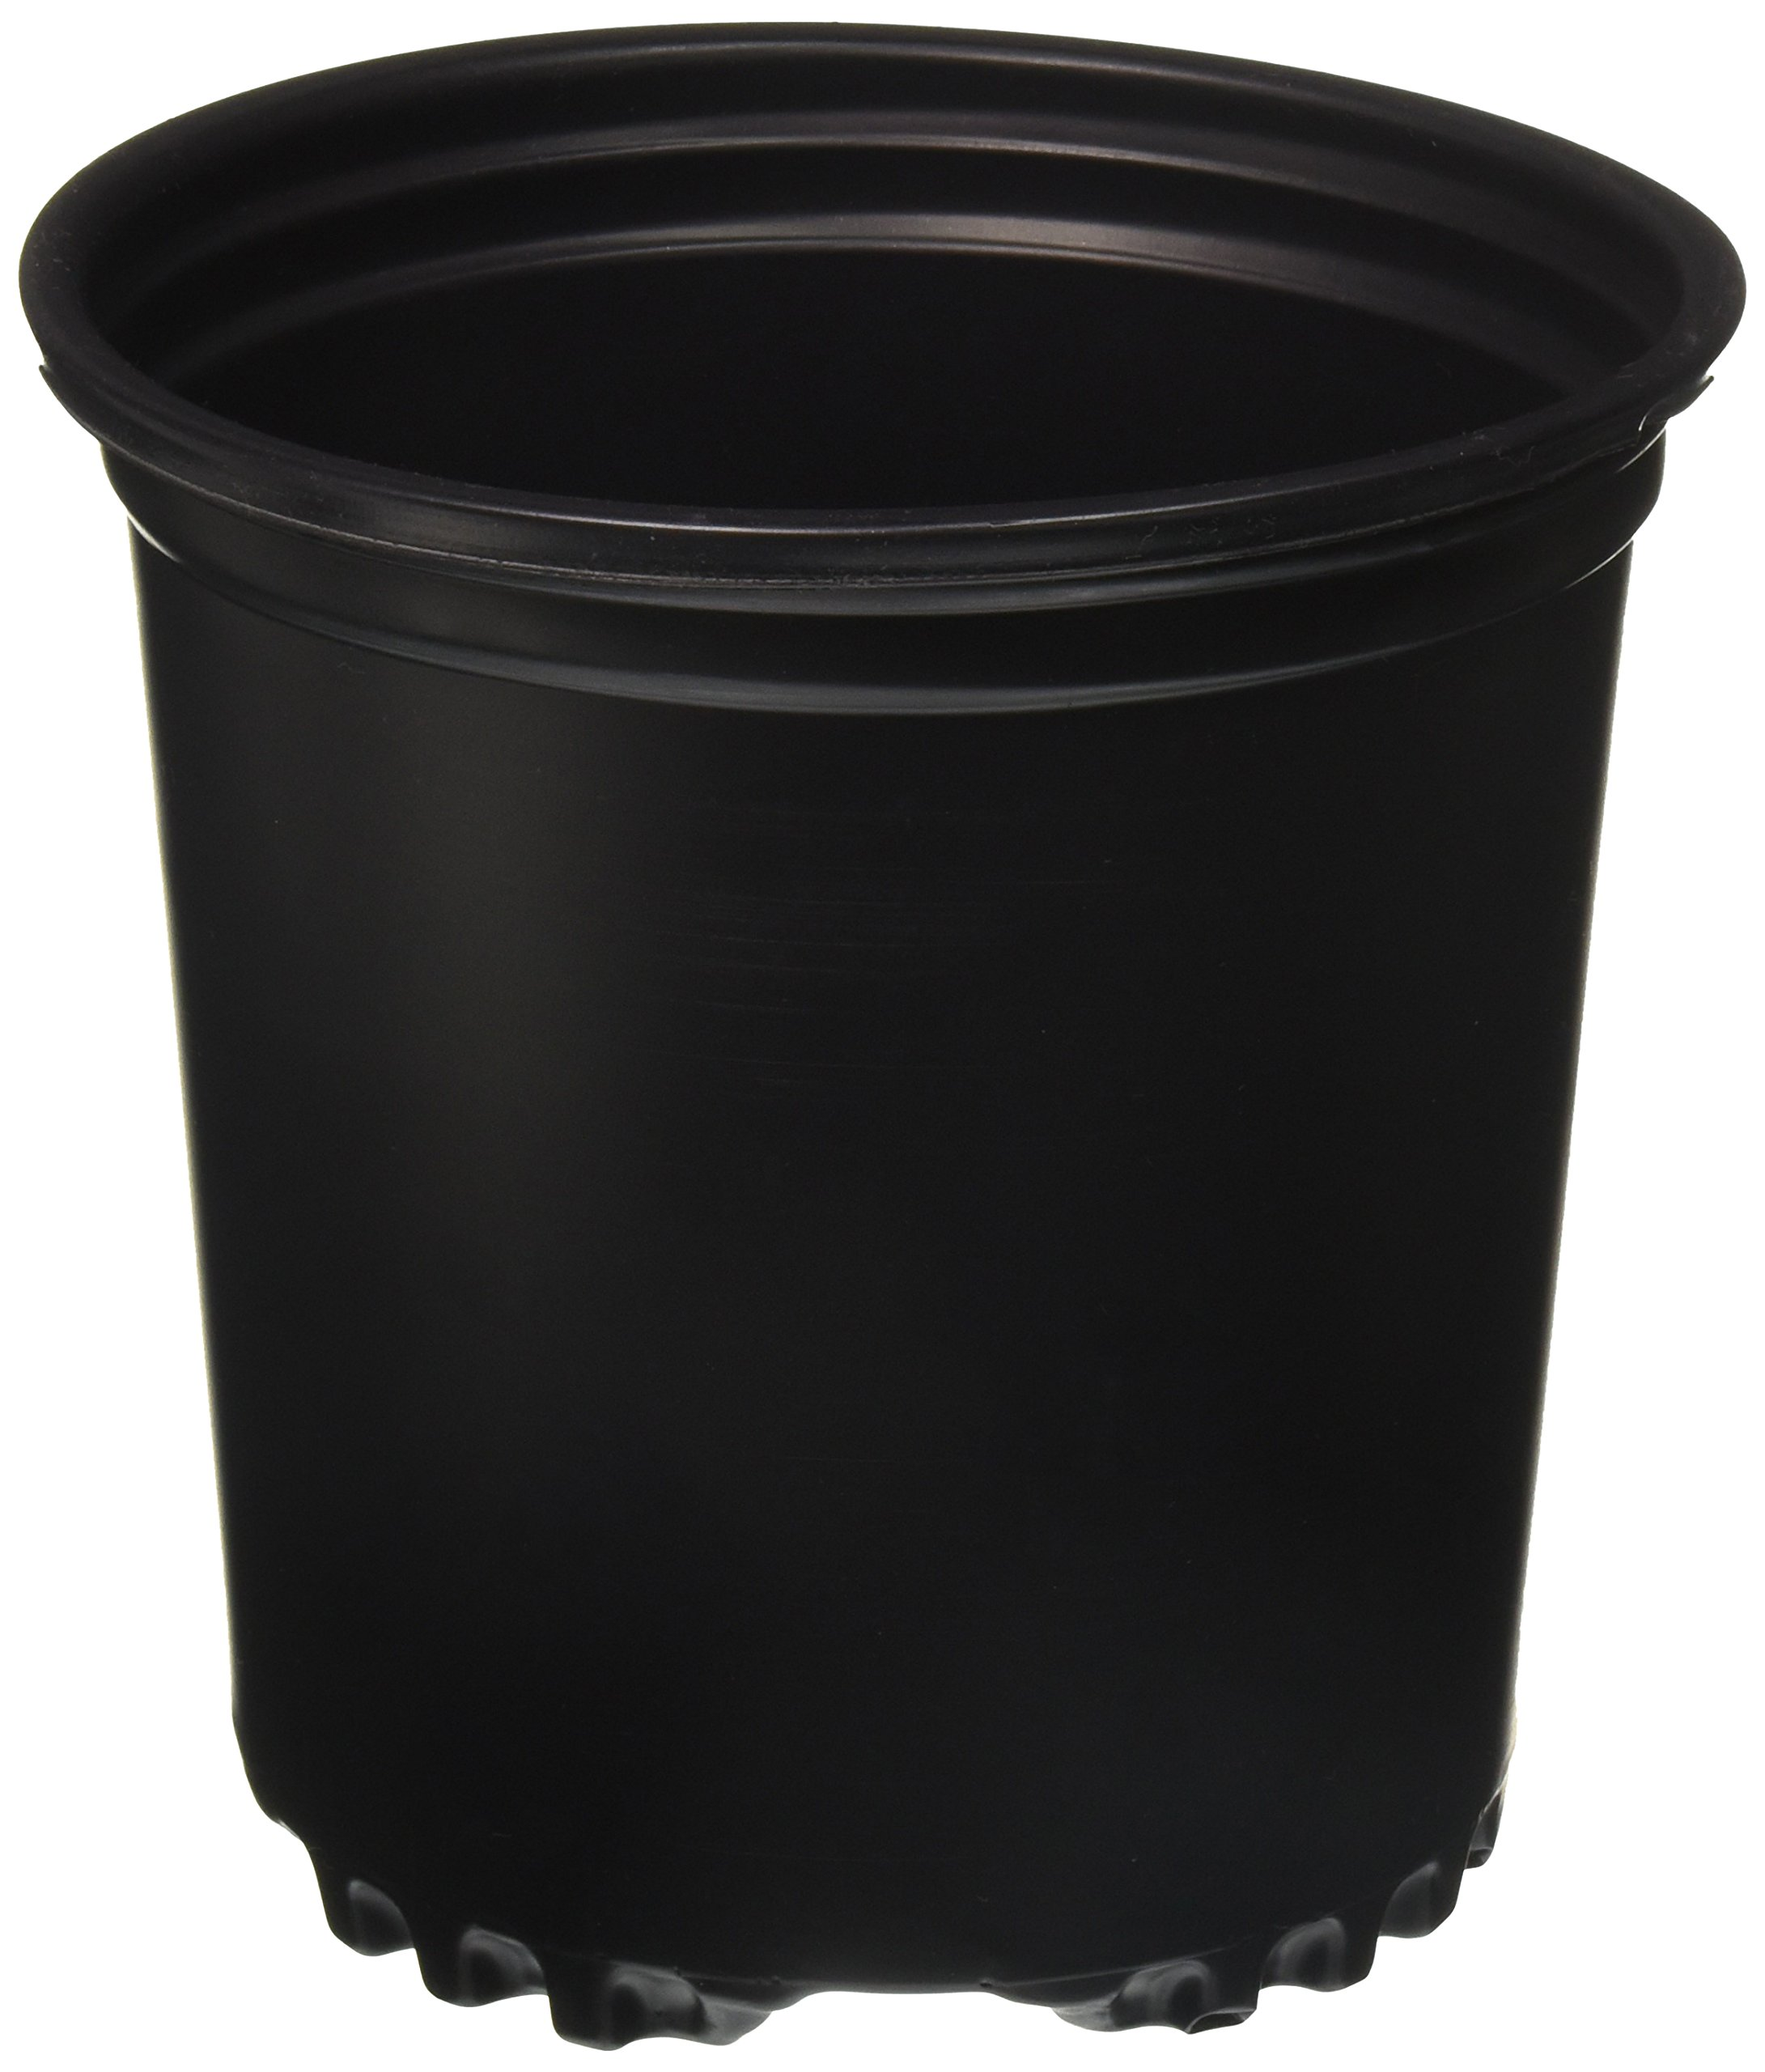 Viagrow 3 gallon - Nursery Pot, 20 pack ( 11.36 liters) Trade Gallon